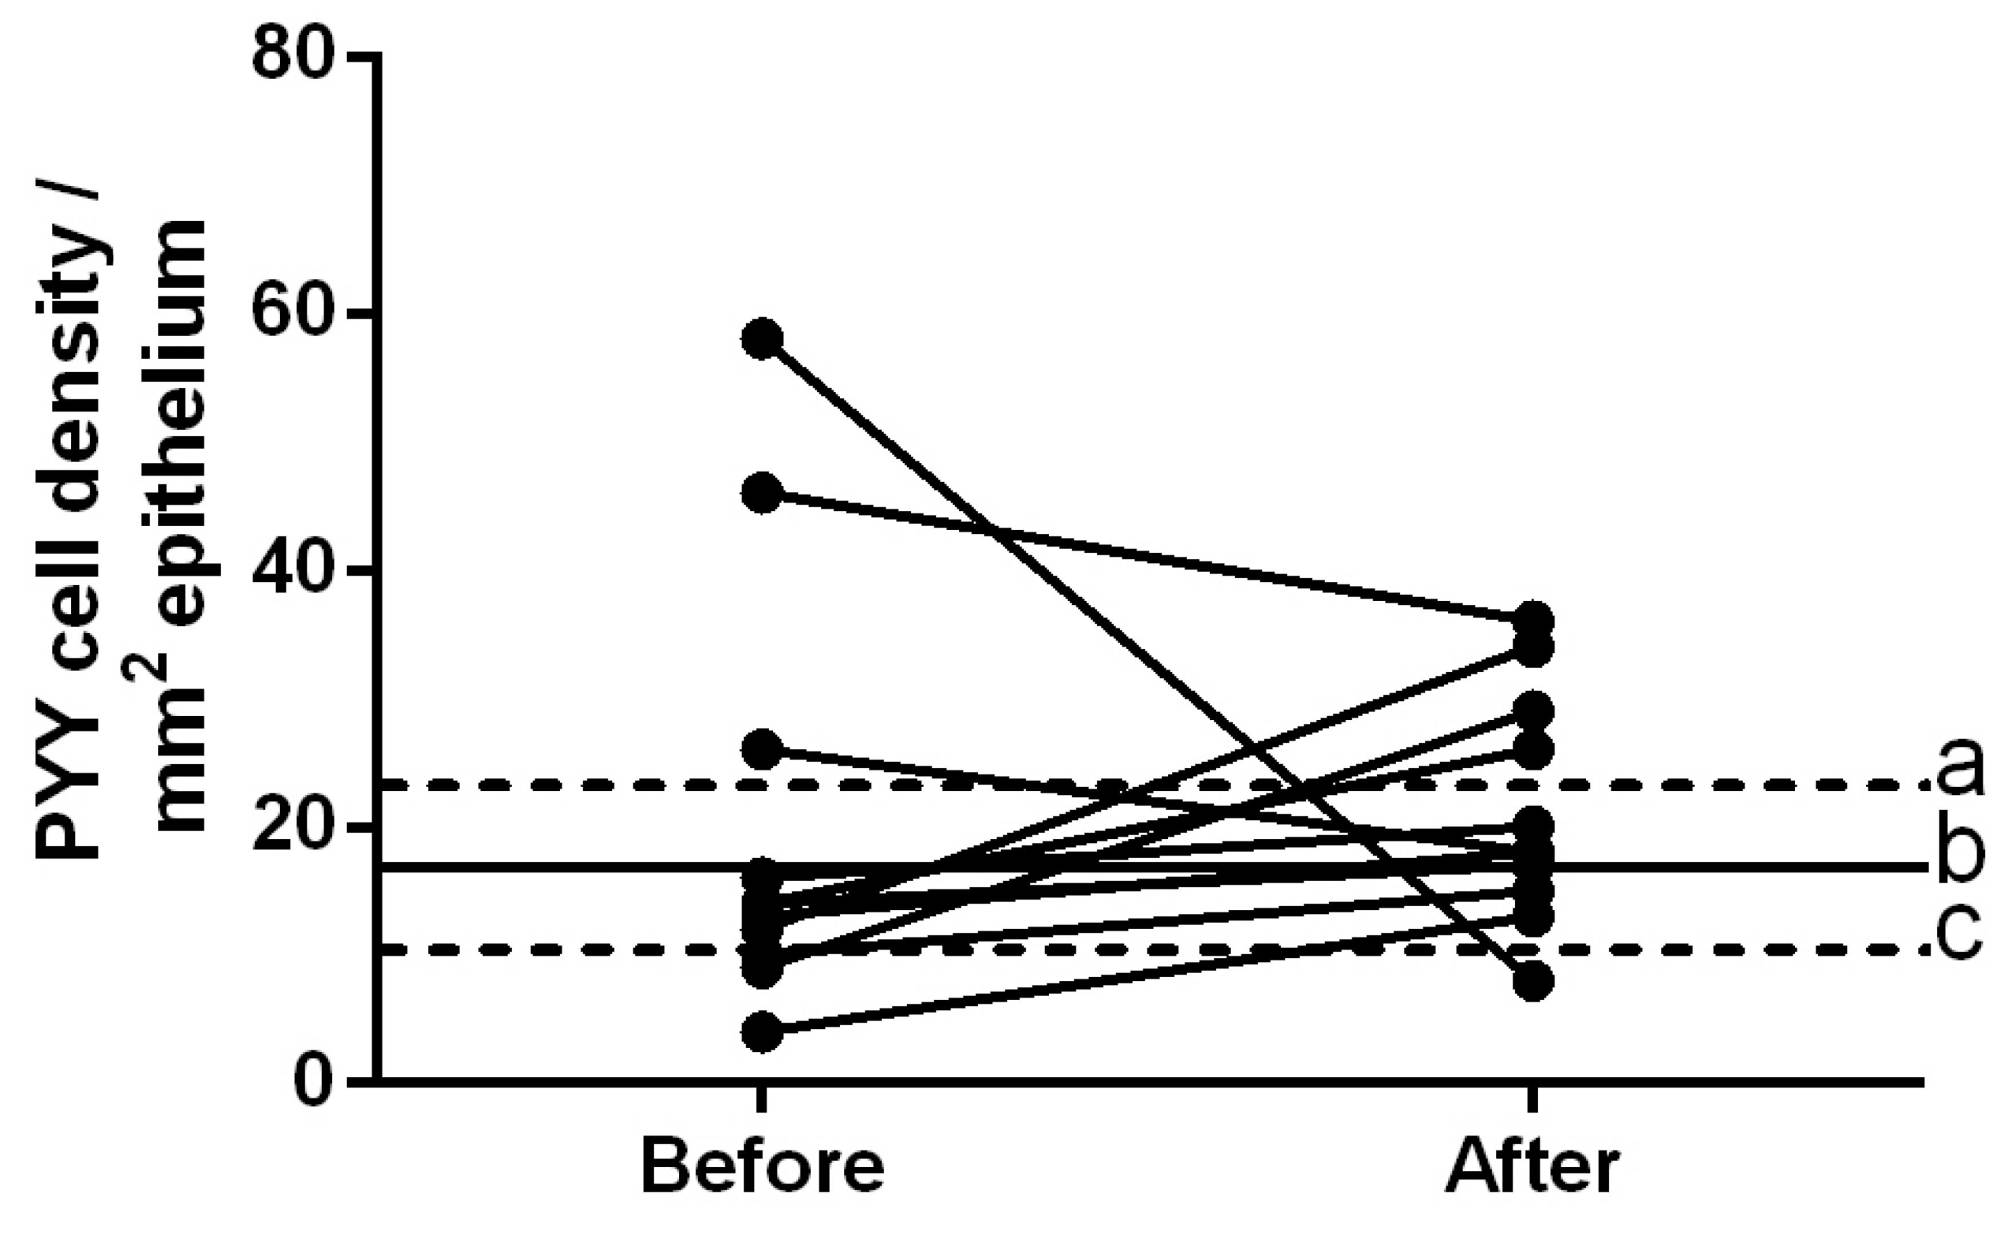 hight resolution of densities of pyy immunoreactive cells in the ileum of patients with ibs prior to and following dietary guidance the dashed lines labeled a and c